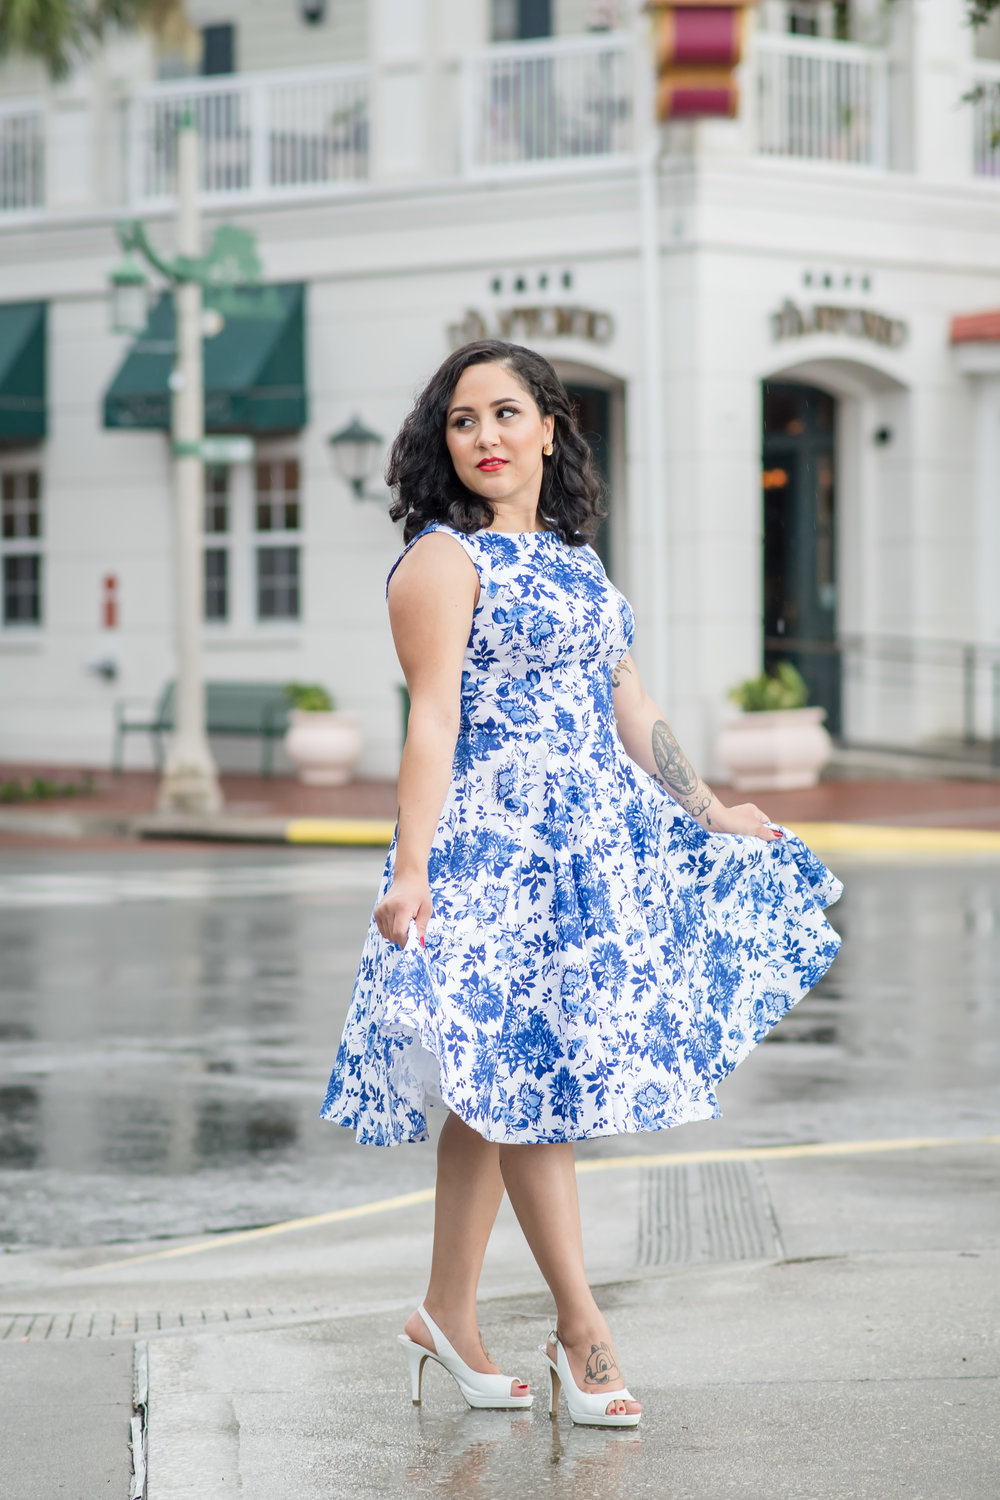 This gorgeous, and beautifully inked model, totally rocked her A-line dress, peep toe heels, and 1950's makeup and hairstyle.Totally in love with this vintage inspired shoot!